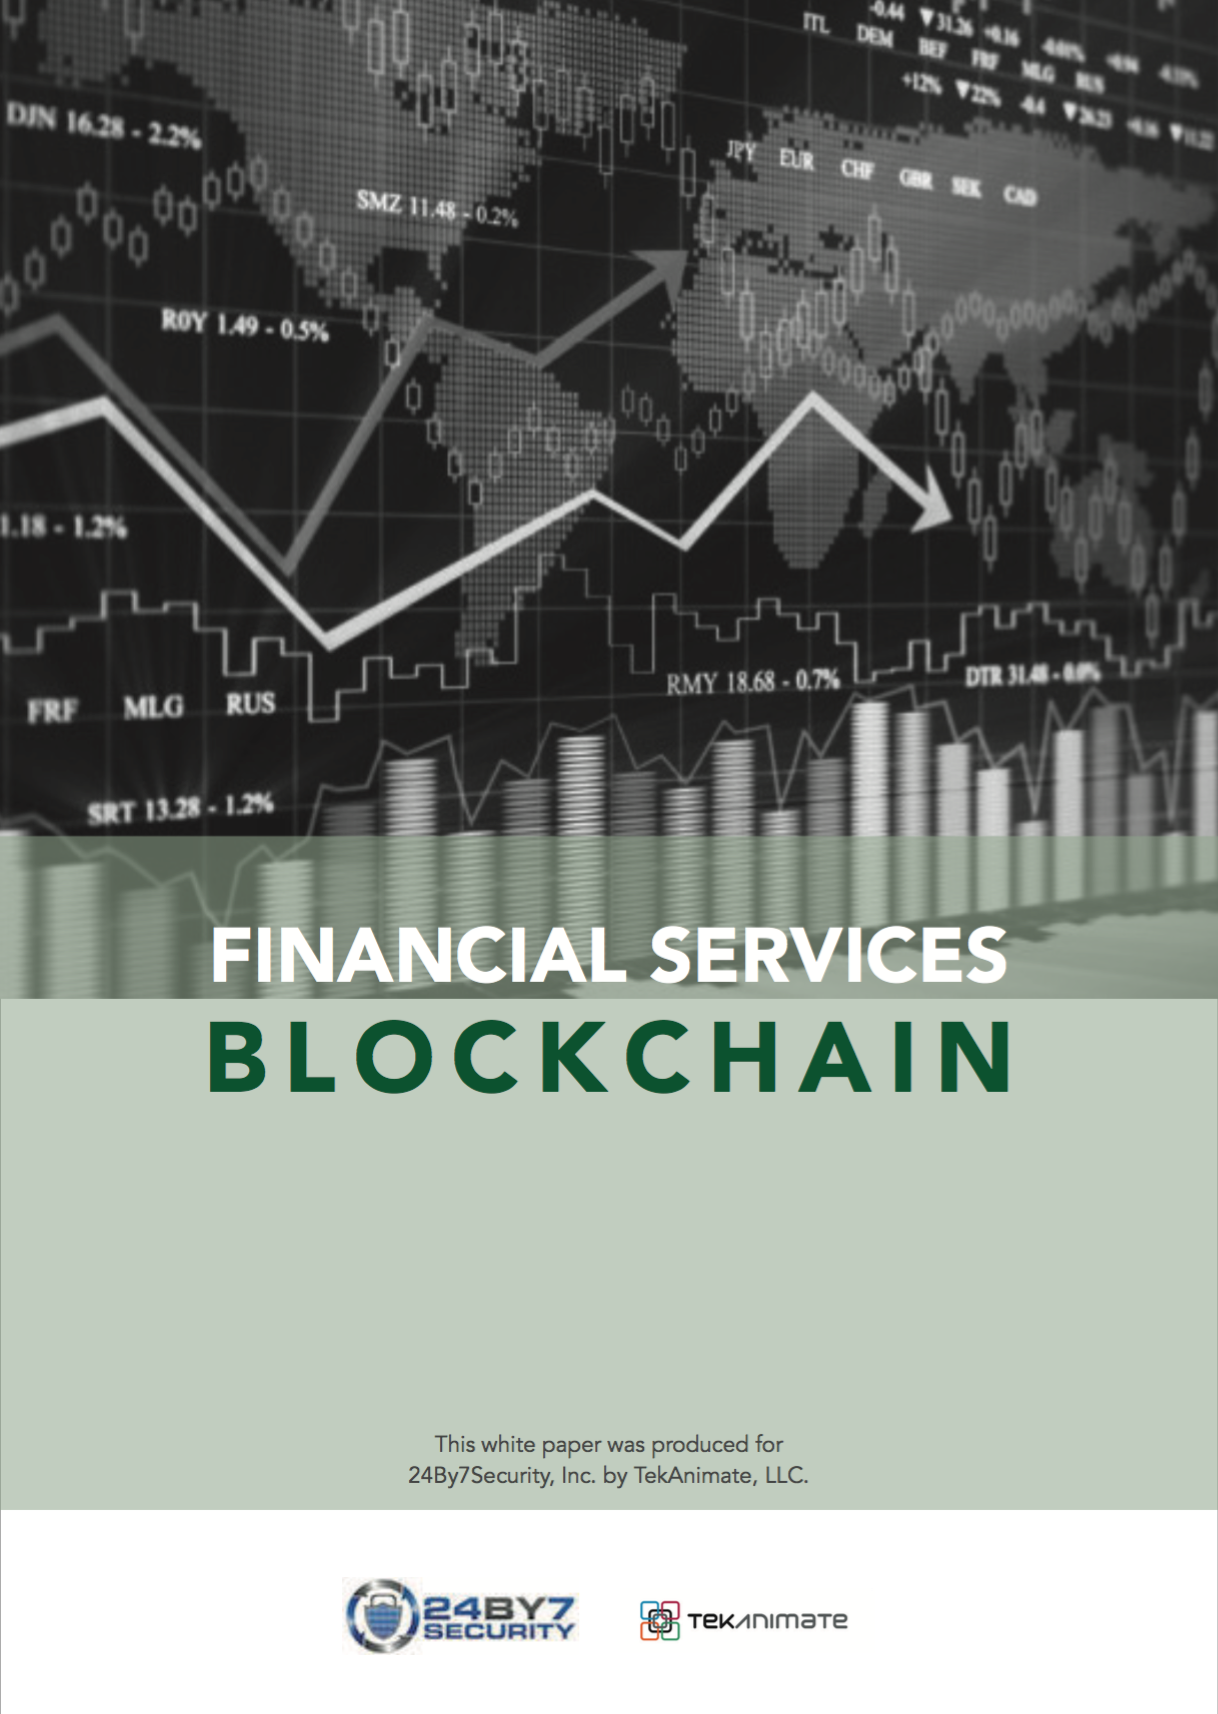 Blockchain for Financial Services white paper, 24By7Security